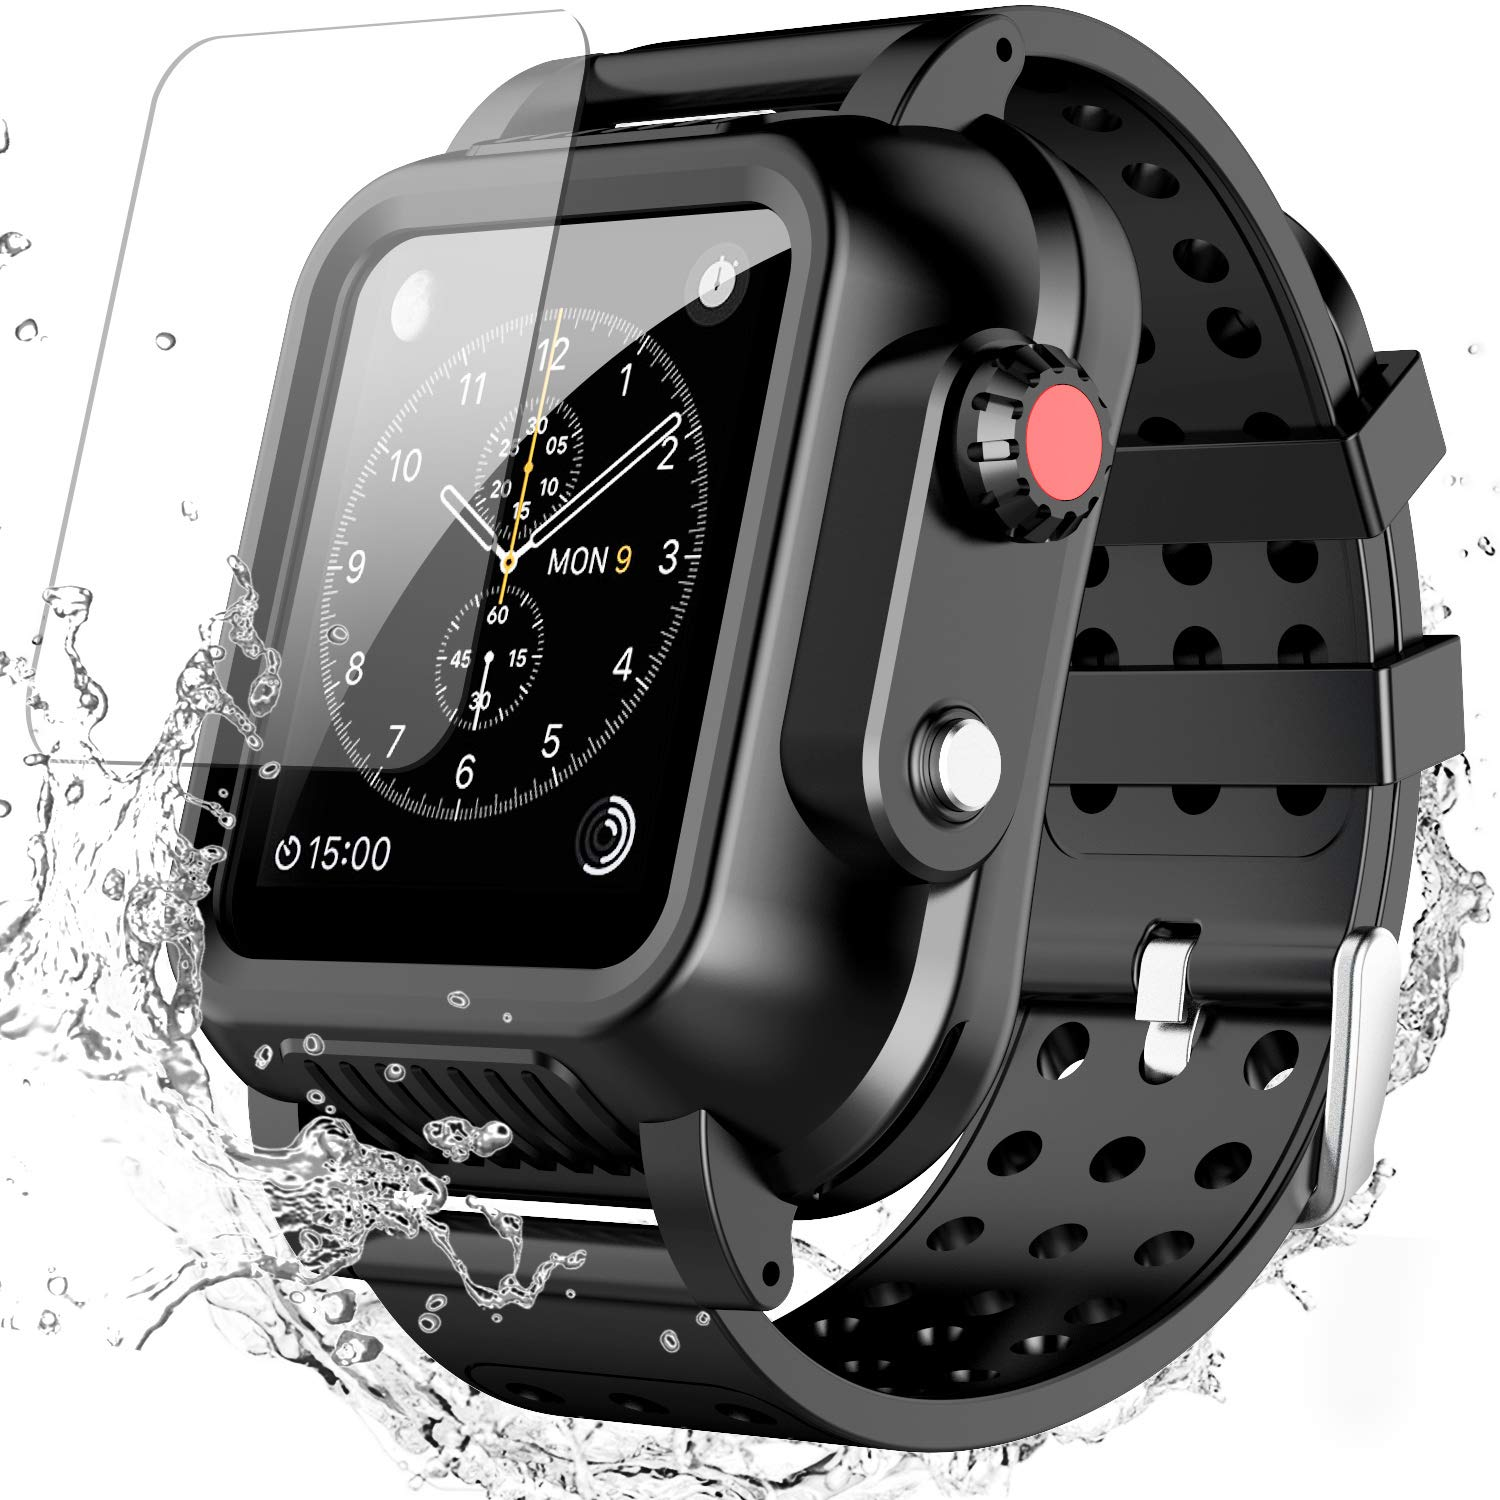 Waterproof Case for Apple Watch Series 3 42mm with Premium Soft Silicone Band, SPIDERCASE Built-in Screen Protector Full Body Rugged Armor Case, Anti-Scratch, Shockproof, for Apple Watch Series 3 42mm